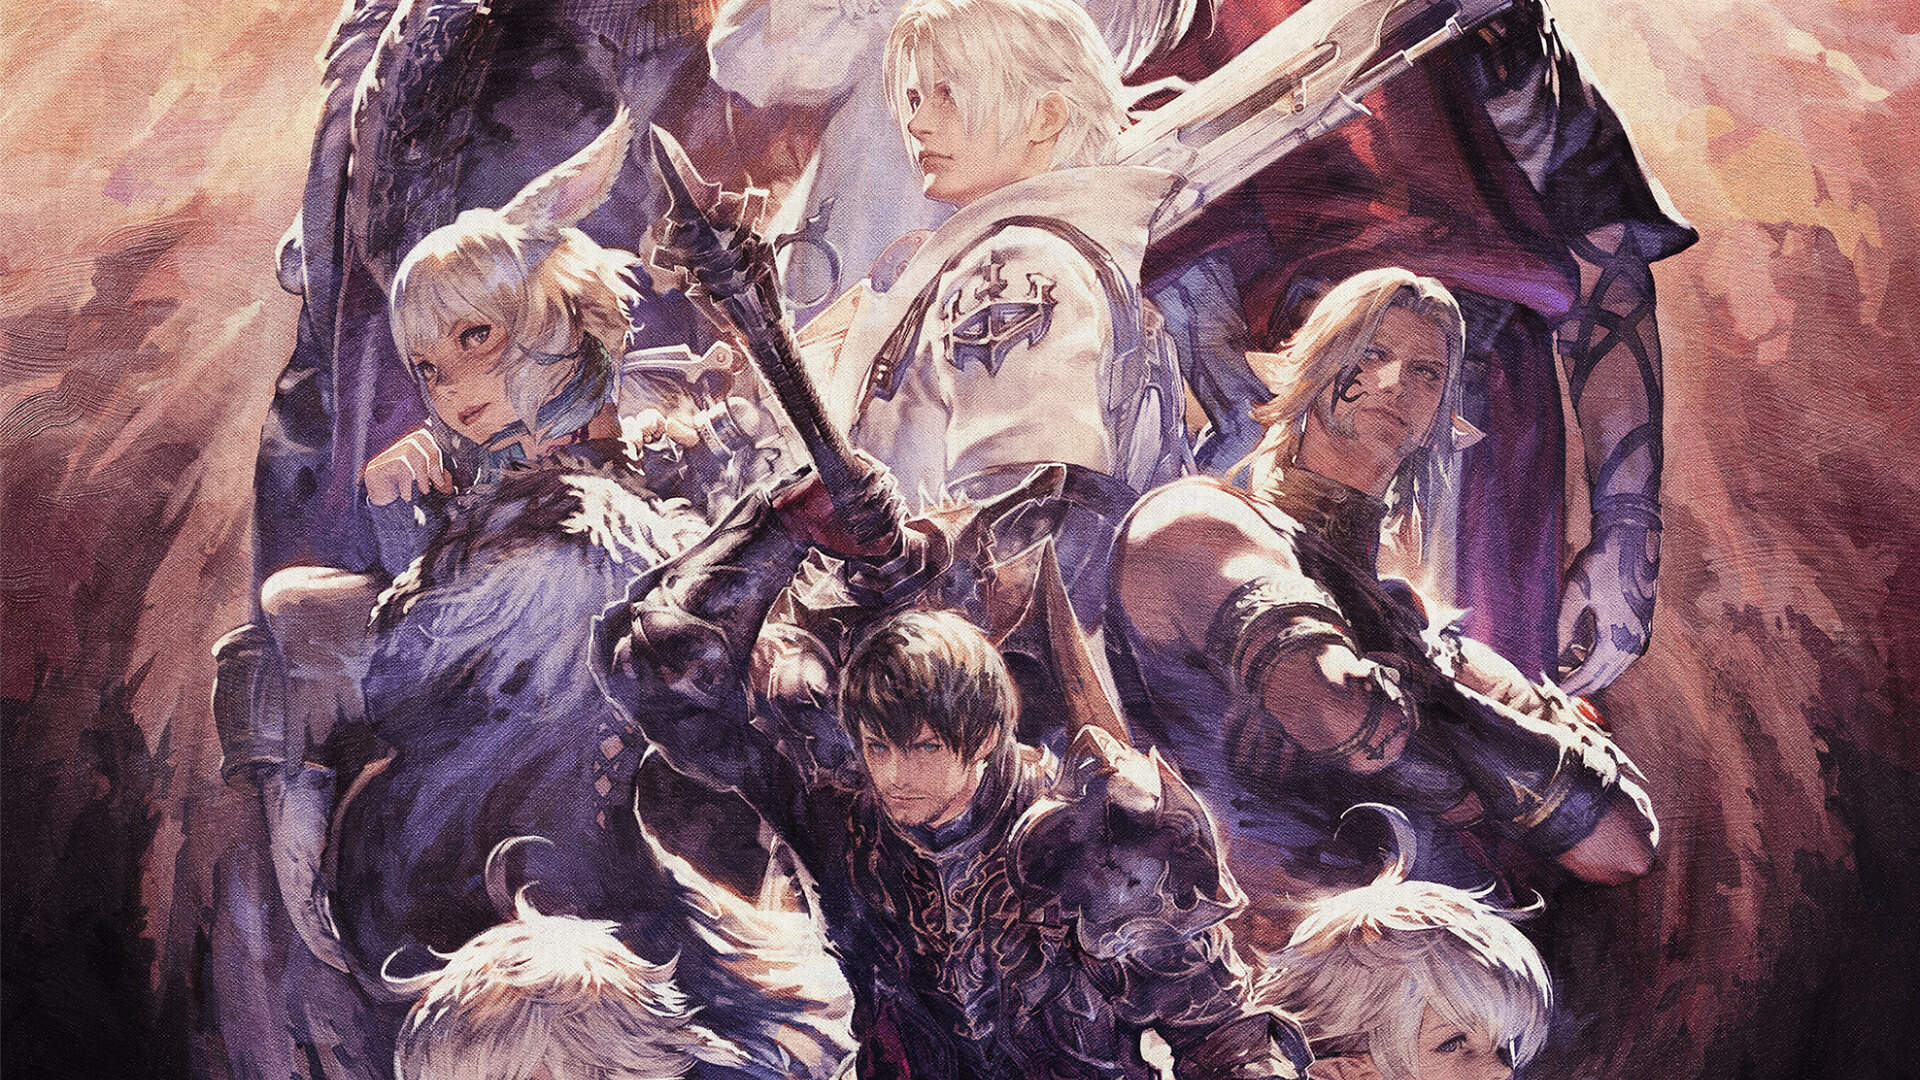 Final Fantasy 14 Patch 5.0 Notes and Job Guide Shows Just How Far Job Changes Are Going